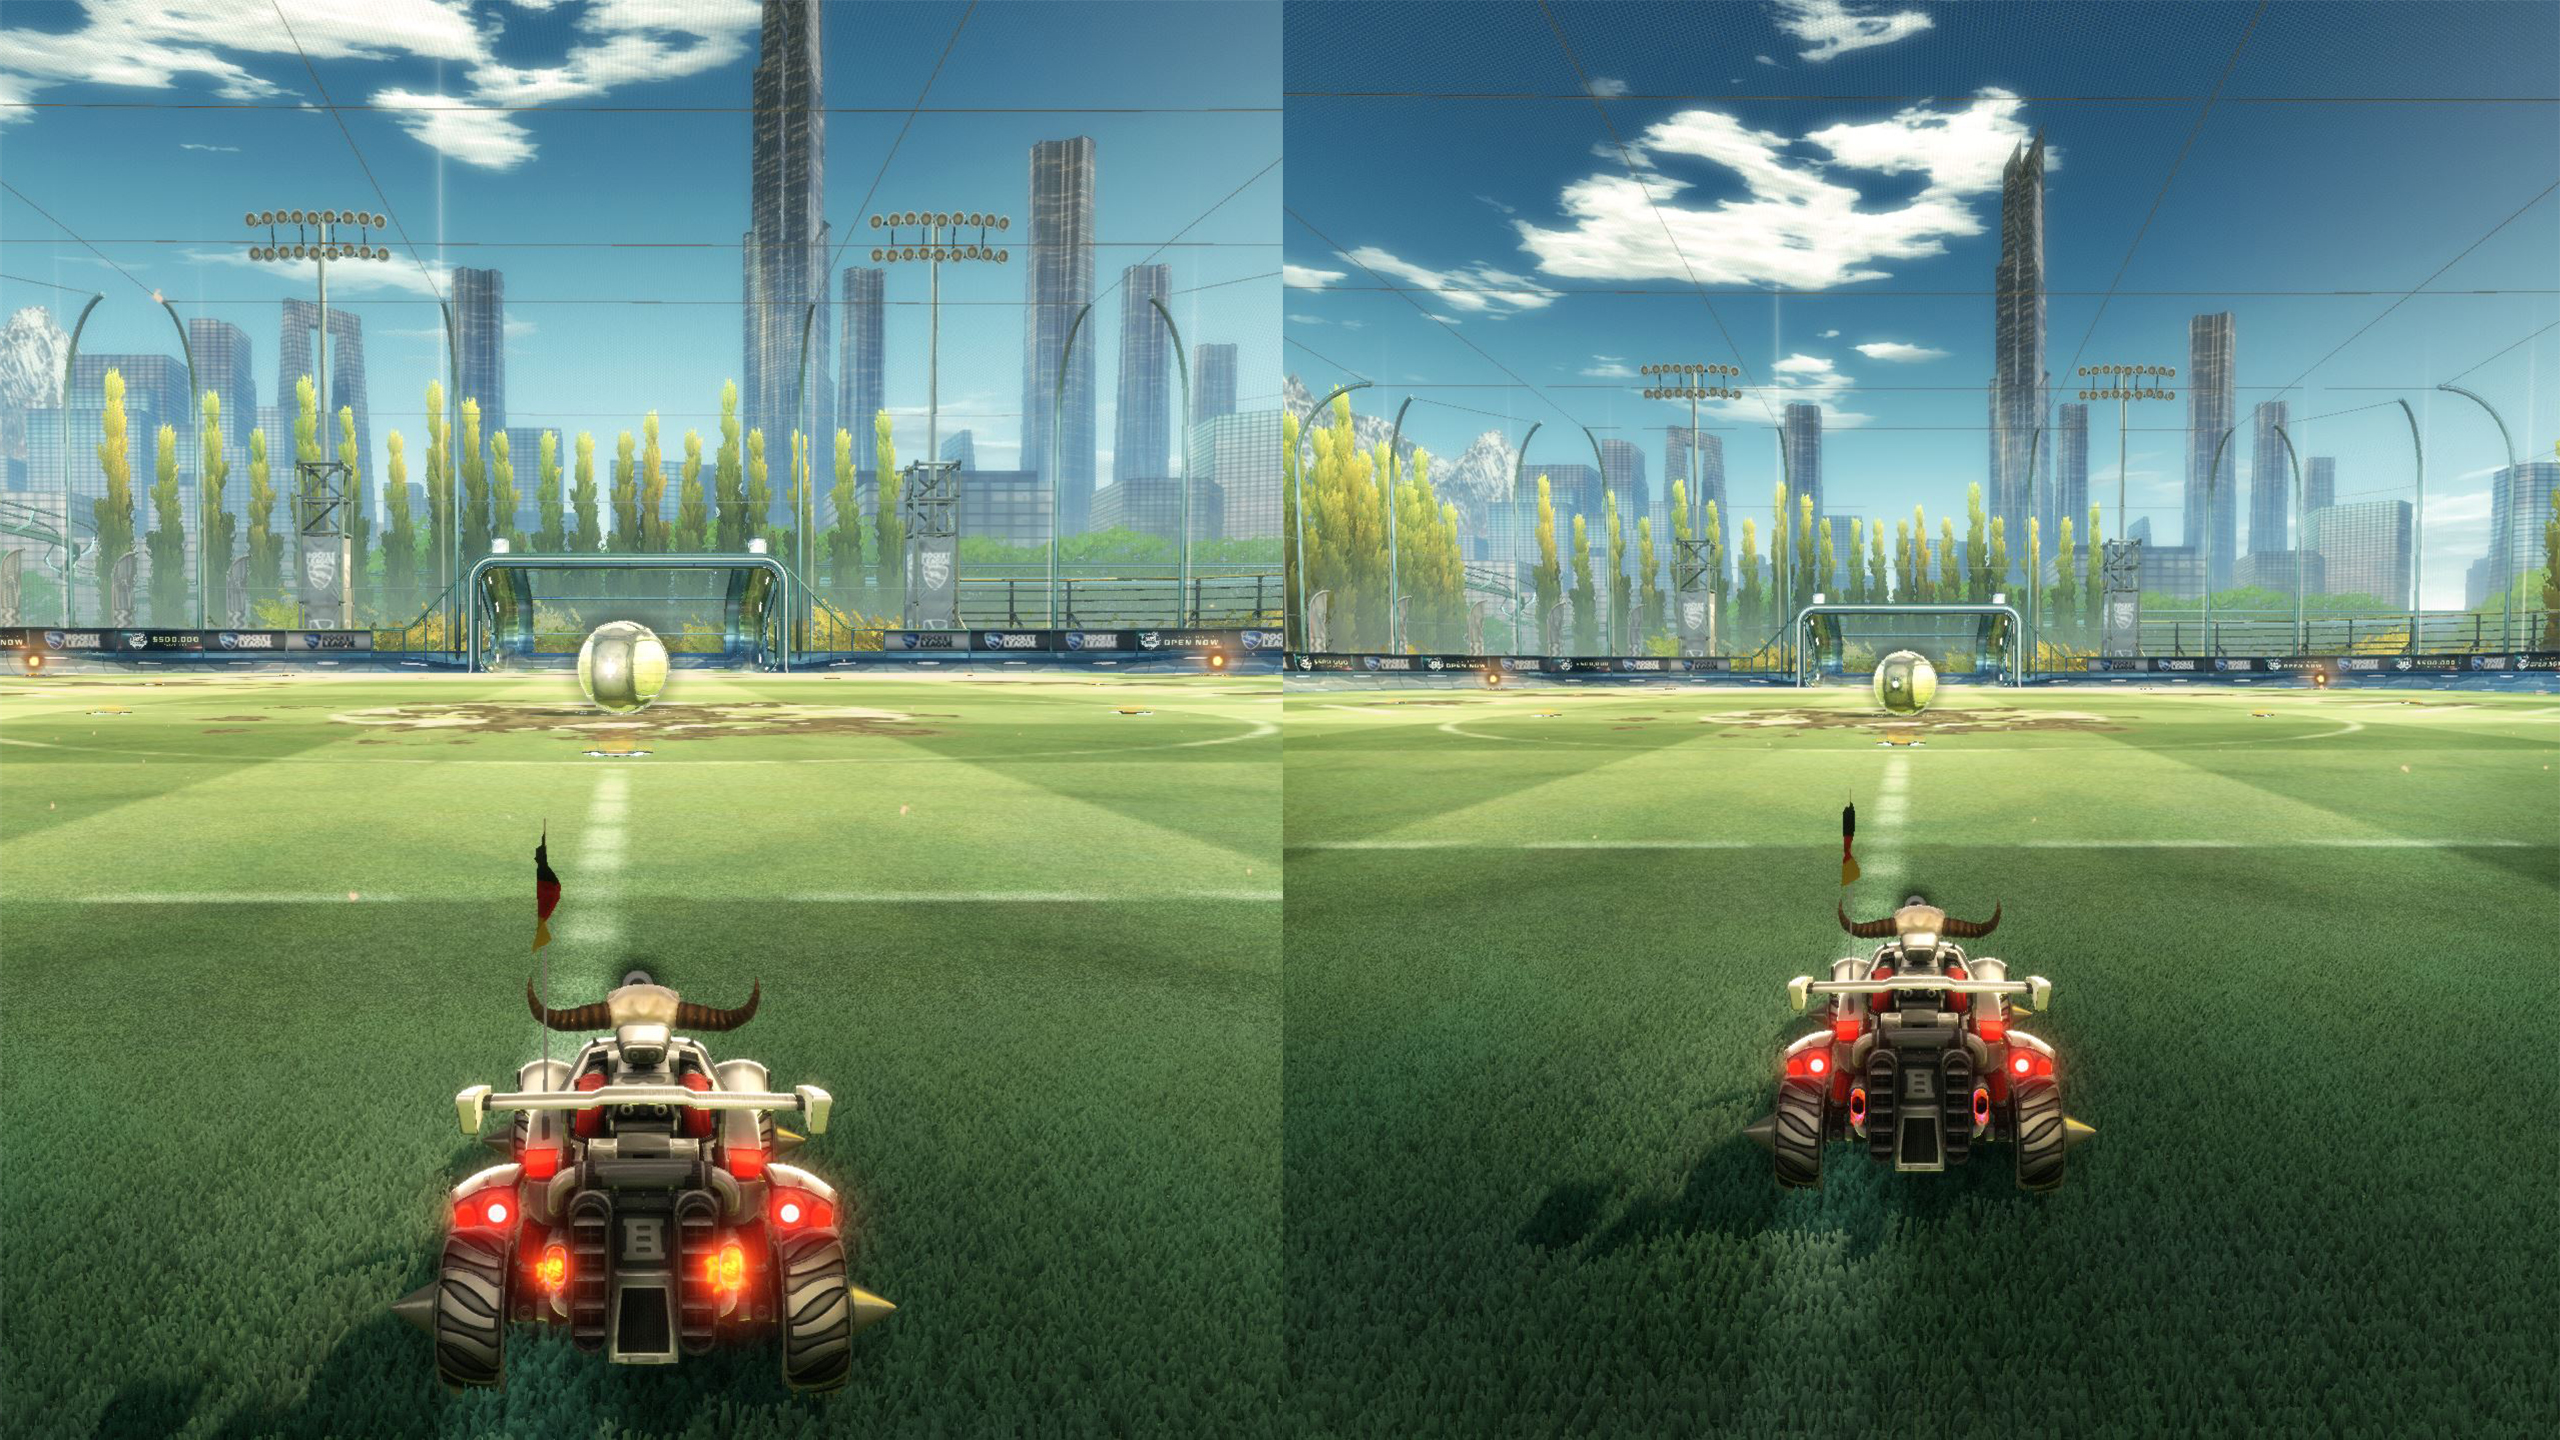 Rocket League Camera Settings Field of View (FOV)